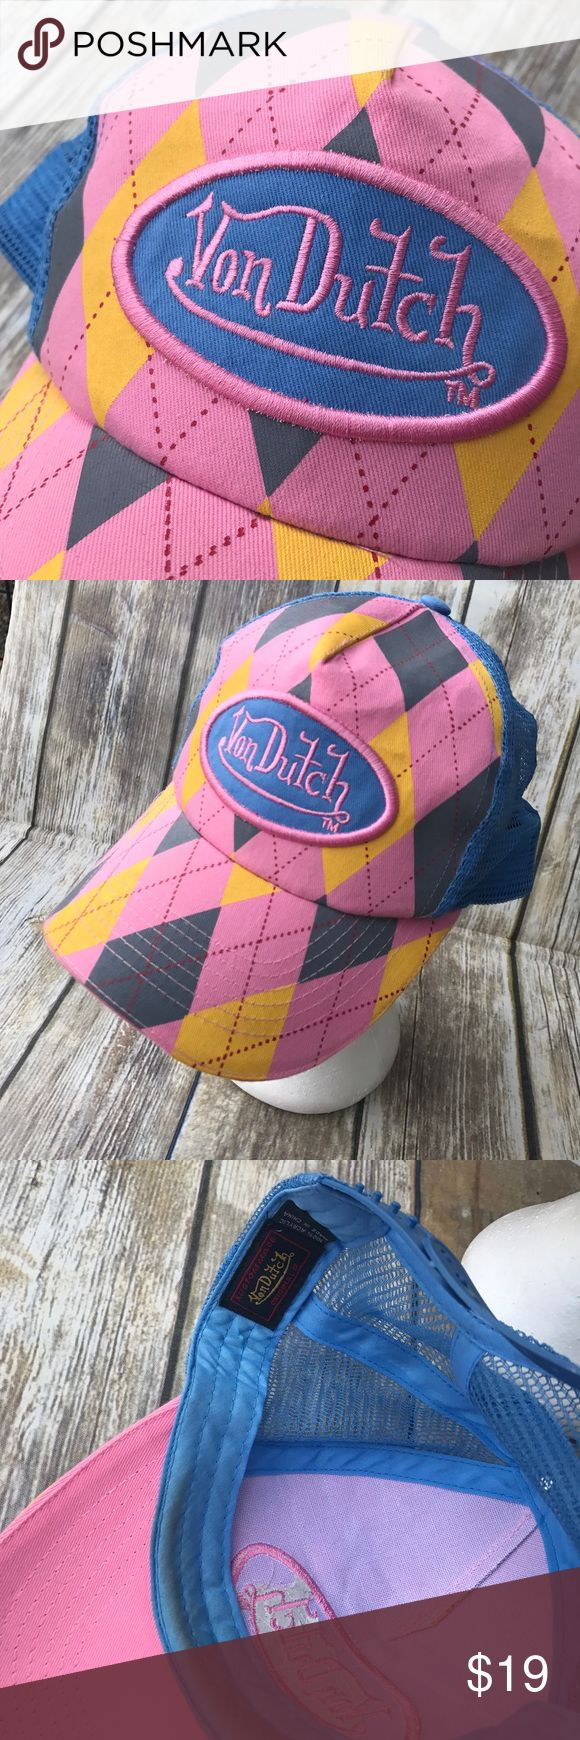 Von Dutch Hat Pink Truckers Snapback Cap Plaid Fabulous Von Dutch pink gray yellow blue hat. Nice emblem on the front. This item is preowned. It does have some discoloration on the brim. Please see photos for accurate description. Fast ship. Von Dutch Accessories Hats